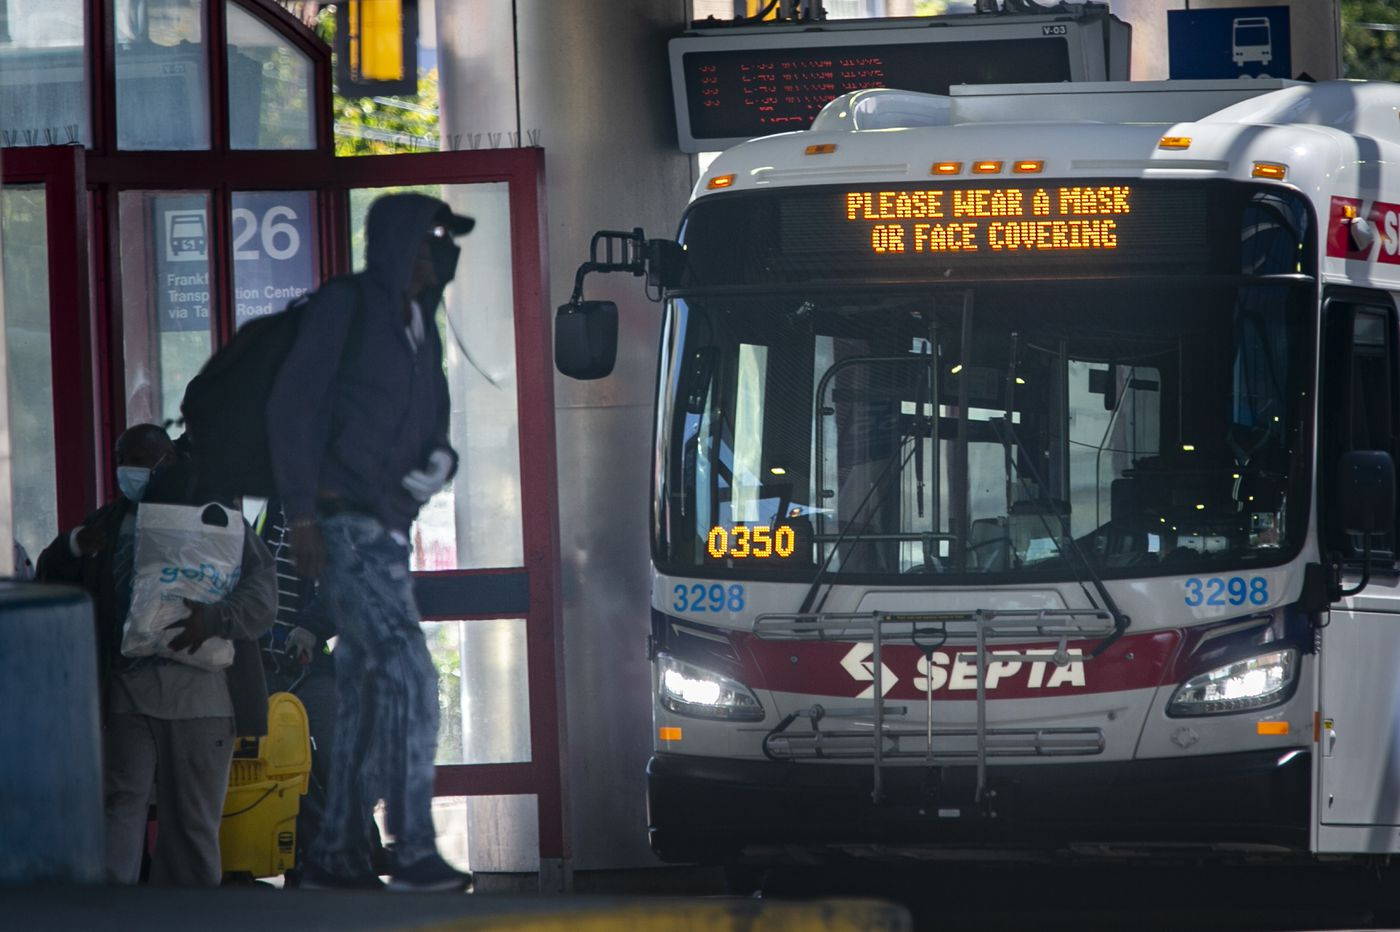 SEPTA is requiring riders to wear face coverings as region begins to reopen